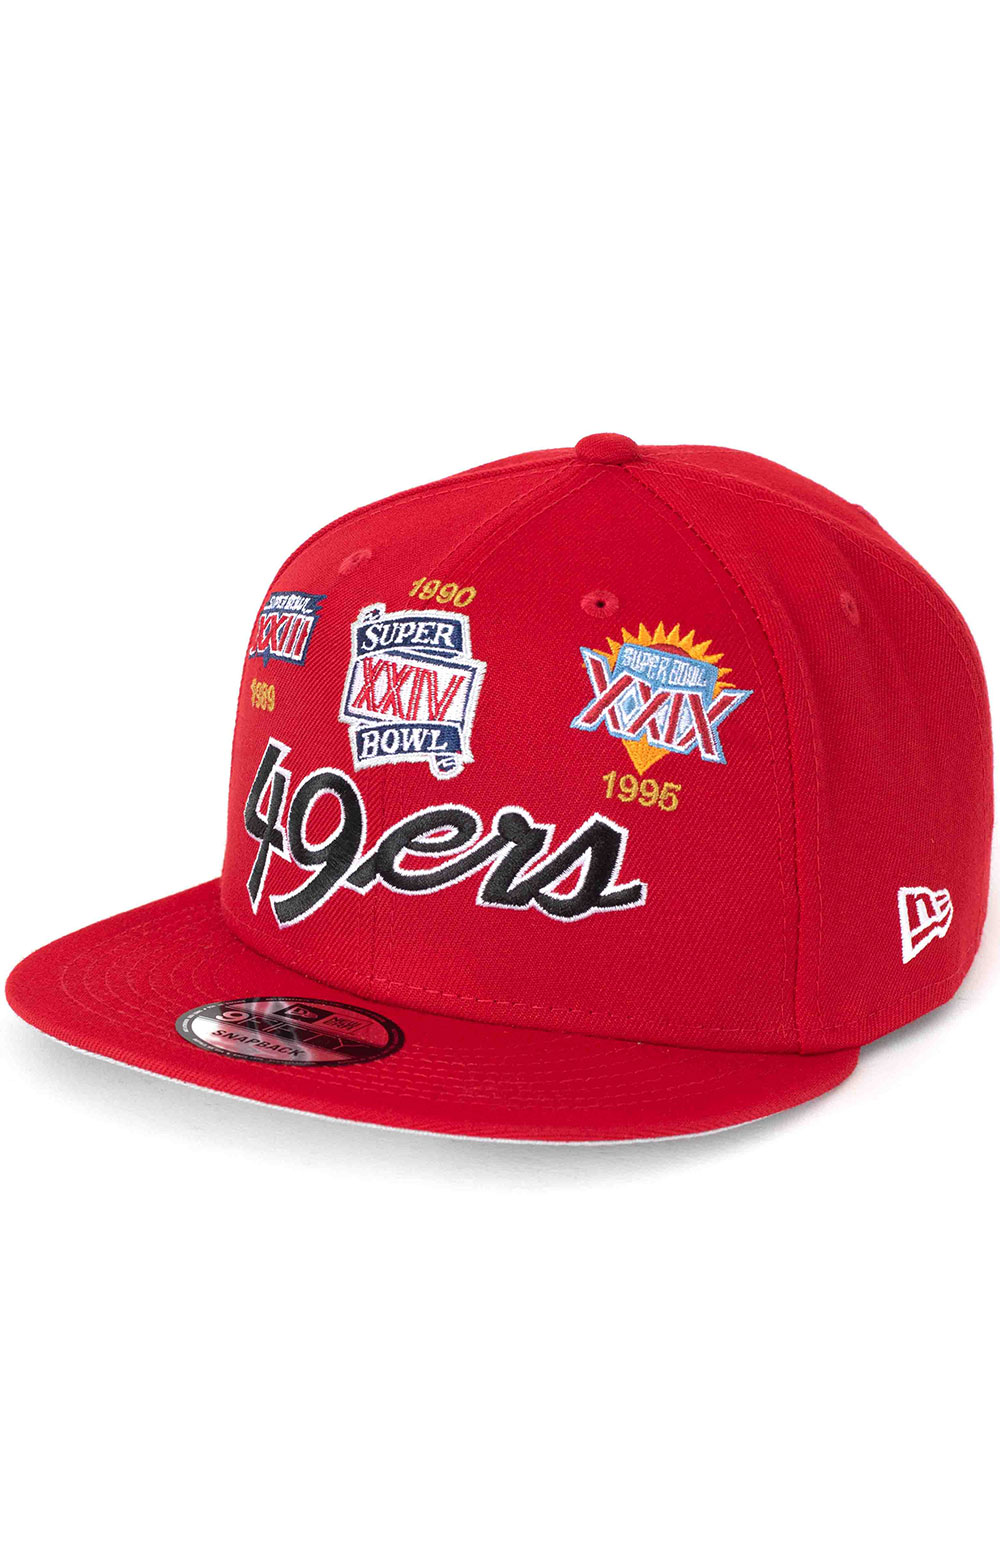 SF 49ers Super Bowl 9Fifty Snap-Back Hat